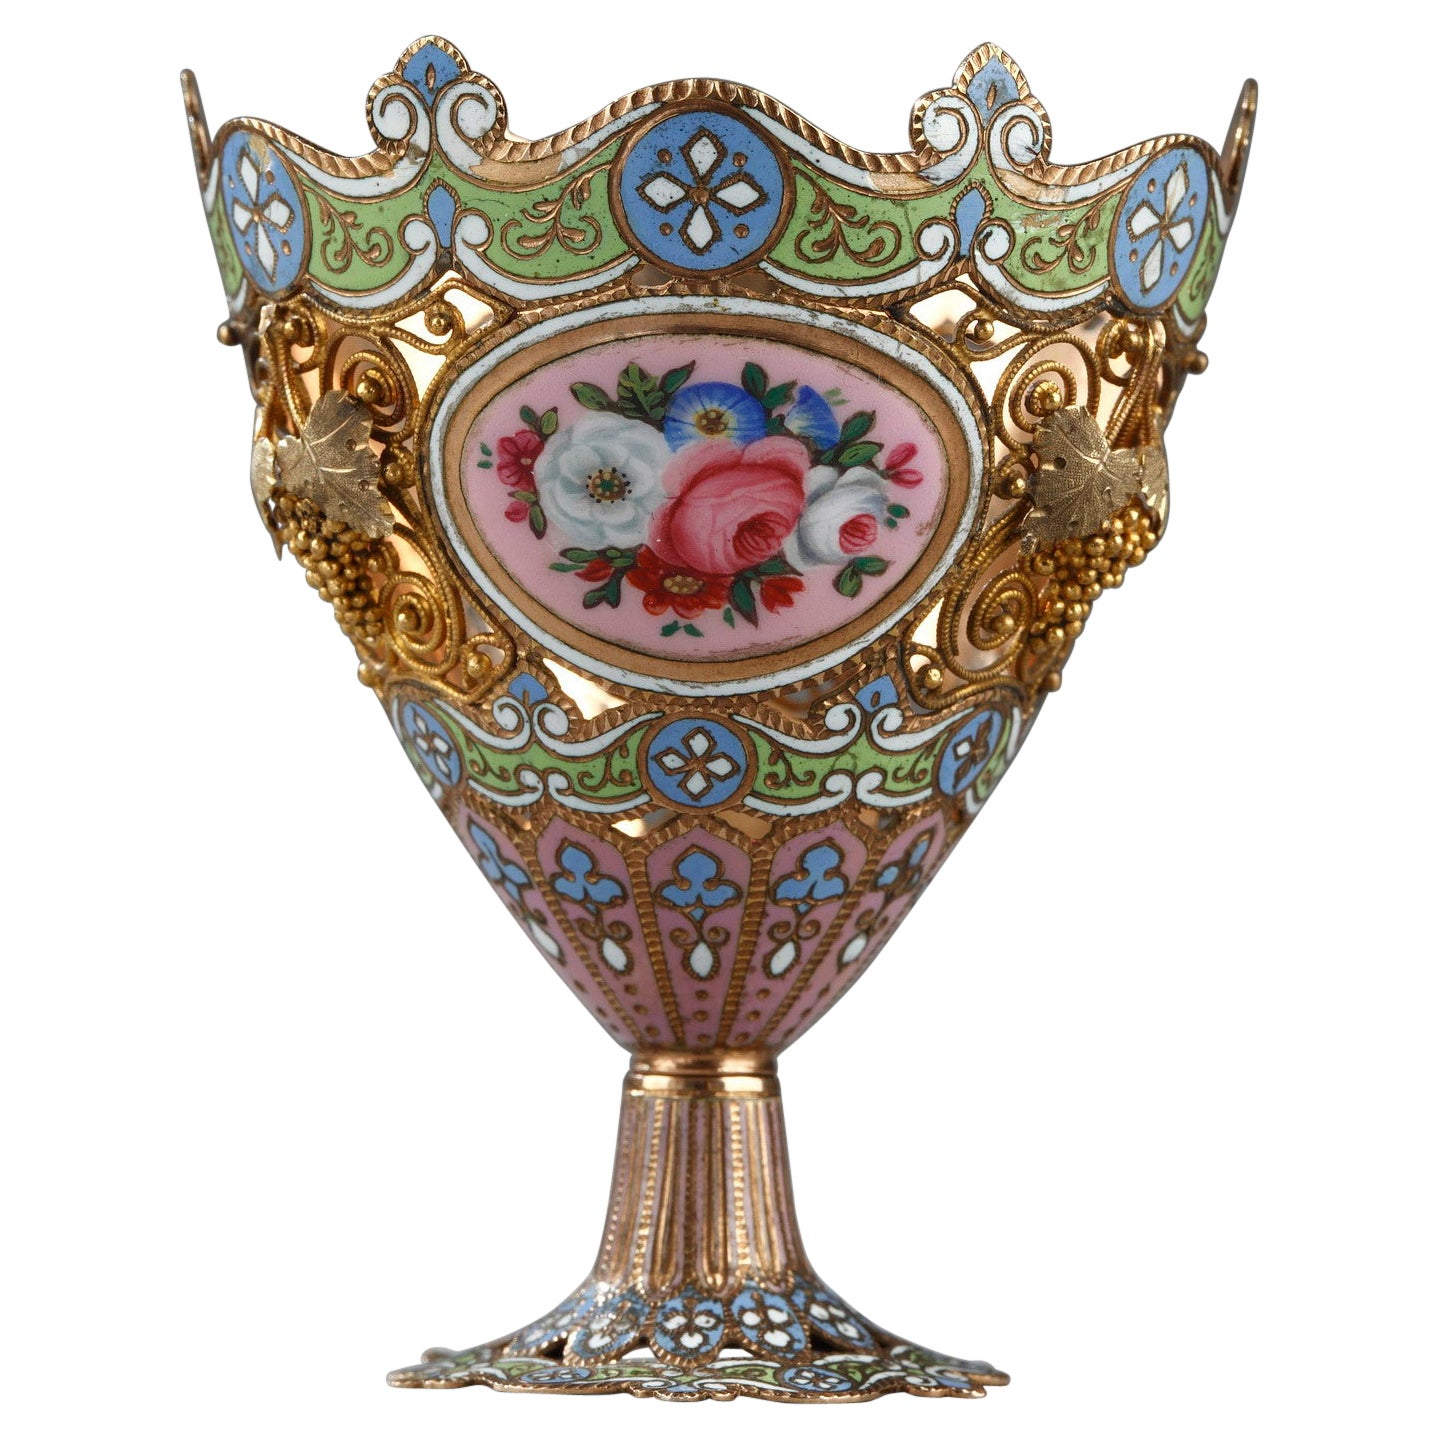 Gold and Enamel Zarf, Swiss, Early 19th Century